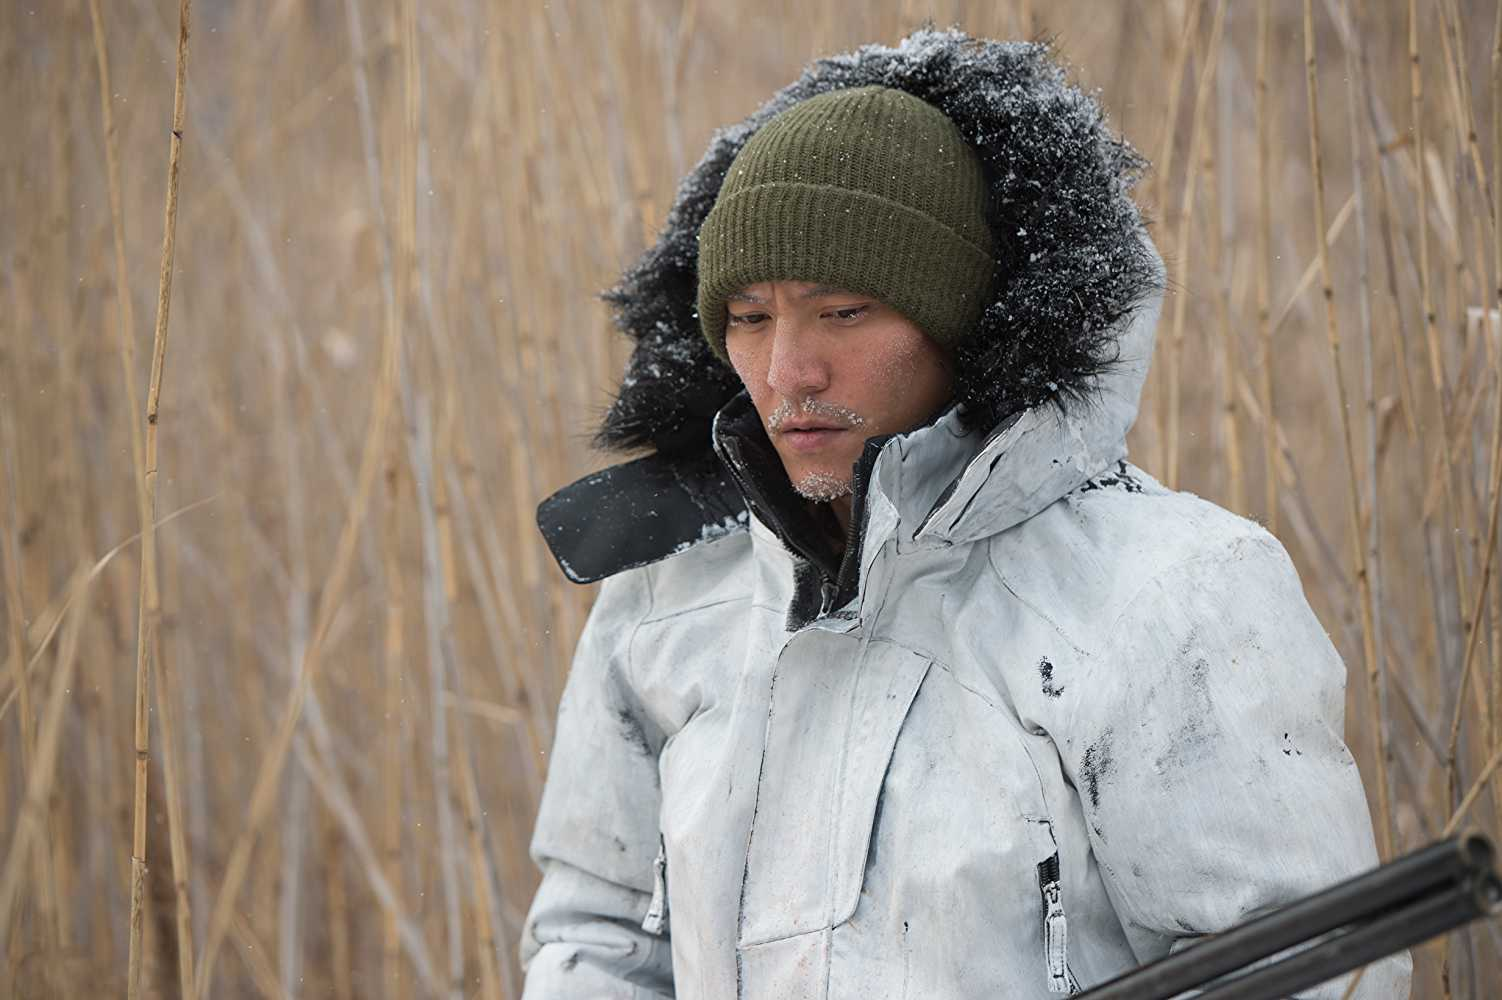 Chang Chen as Wang in Savage